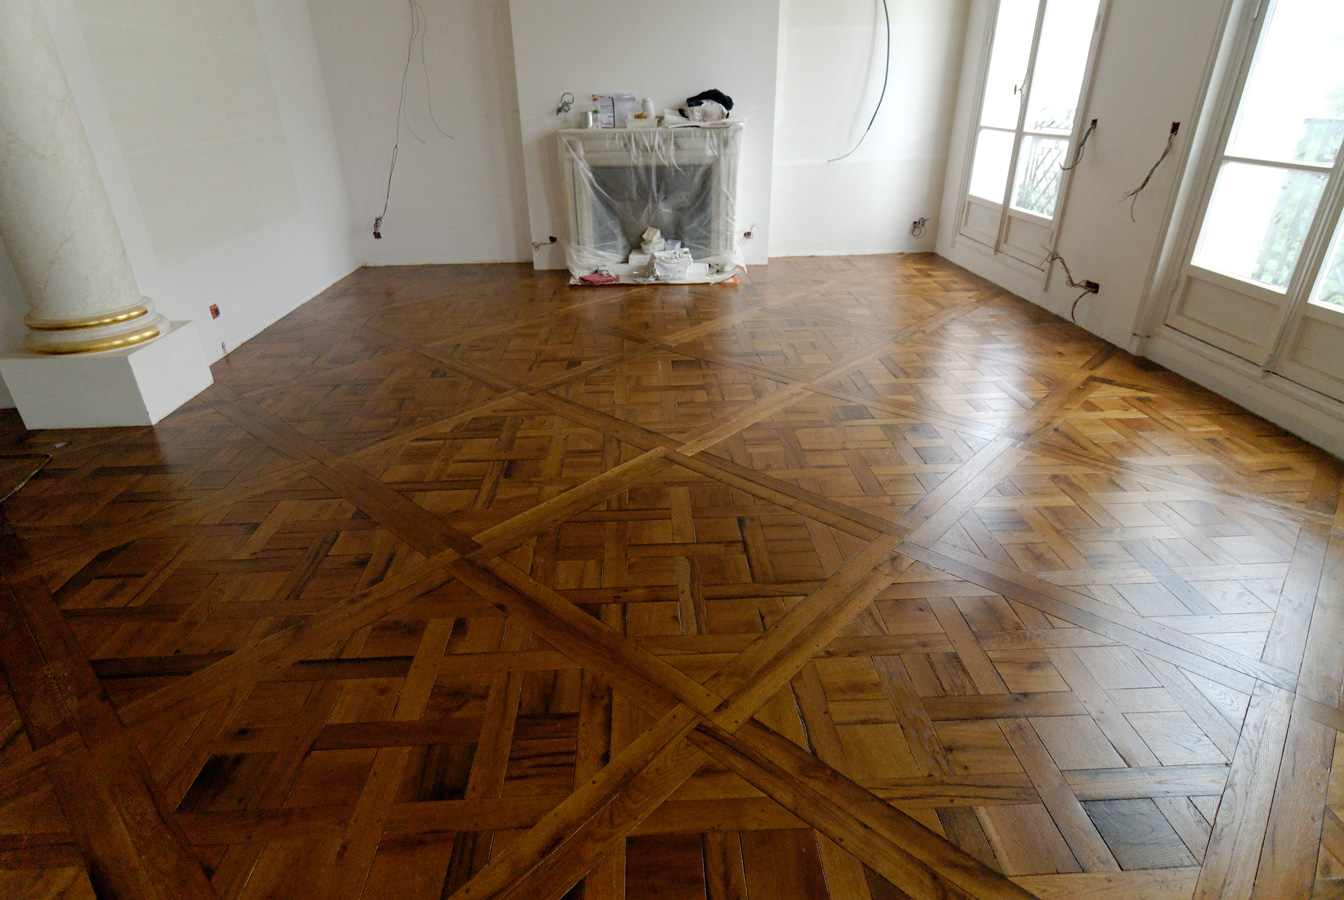 cireuse parquet cireuse falda cl avec kit brosses u feutres pas utilise with cireuse parquet. Black Bedroom Furniture Sets. Home Design Ideas